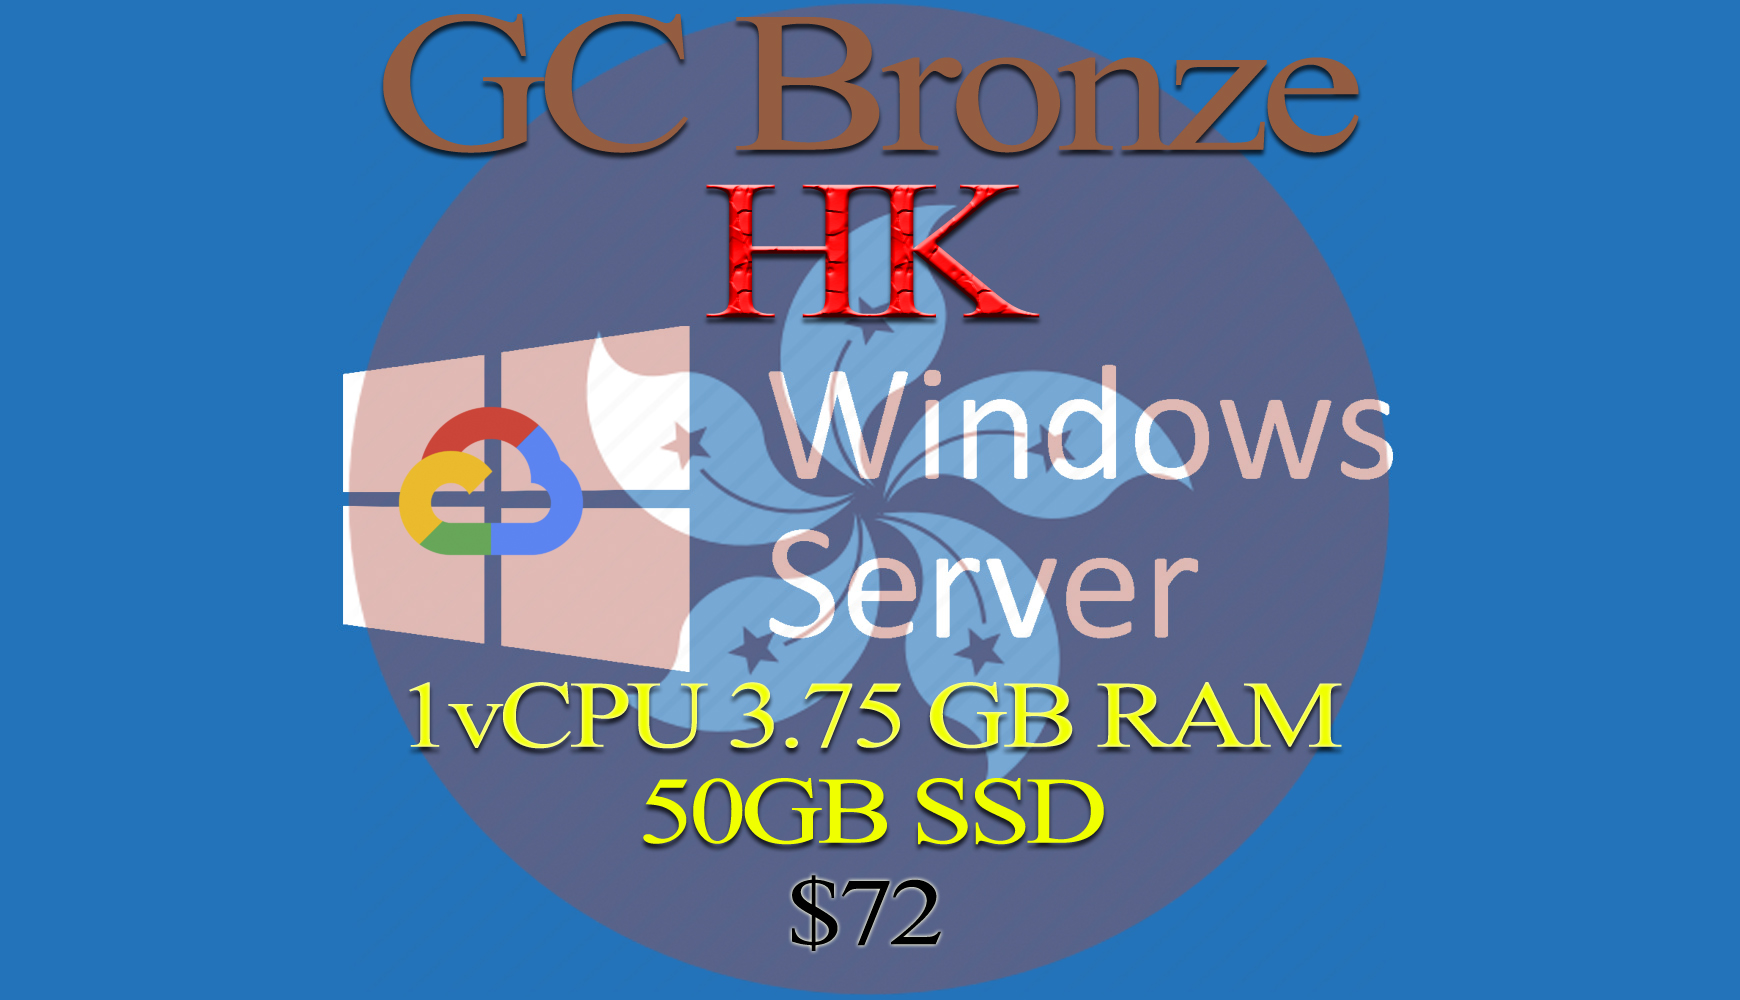 Hong Kong RDP Bronze - 1vCPU - 3.75GB RAM - Guarantee!